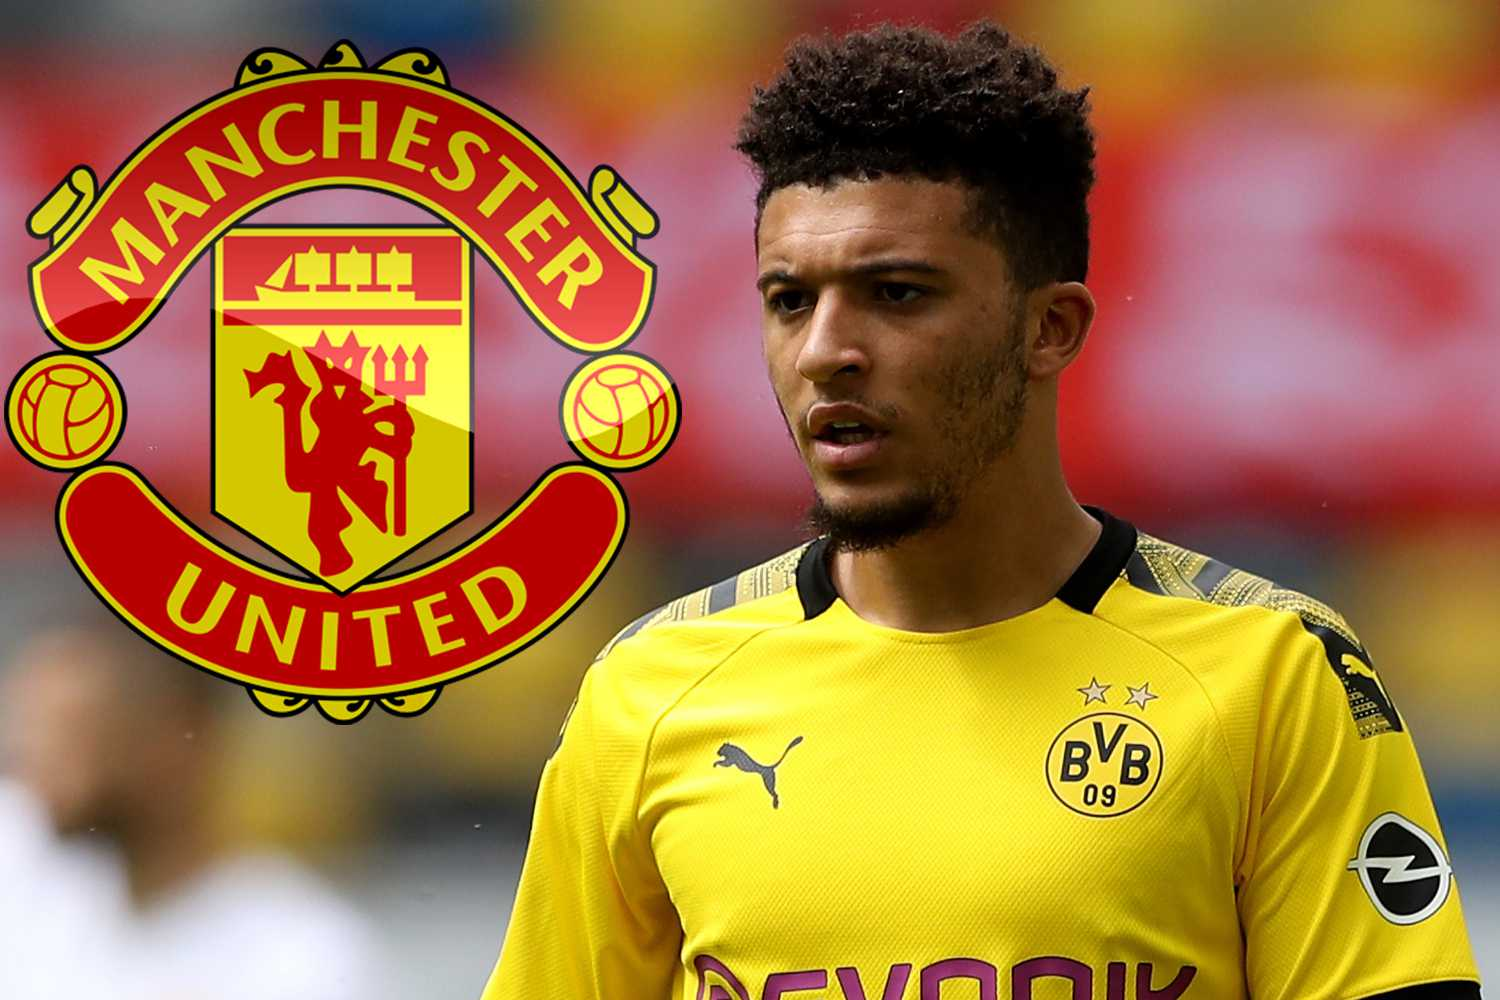 Scooper Ethiopia Football News Man Utd Given Dortmund Deadline Date For 115m Jadon Sancho As Player Refuses To Rule Out Old Trafford Switch